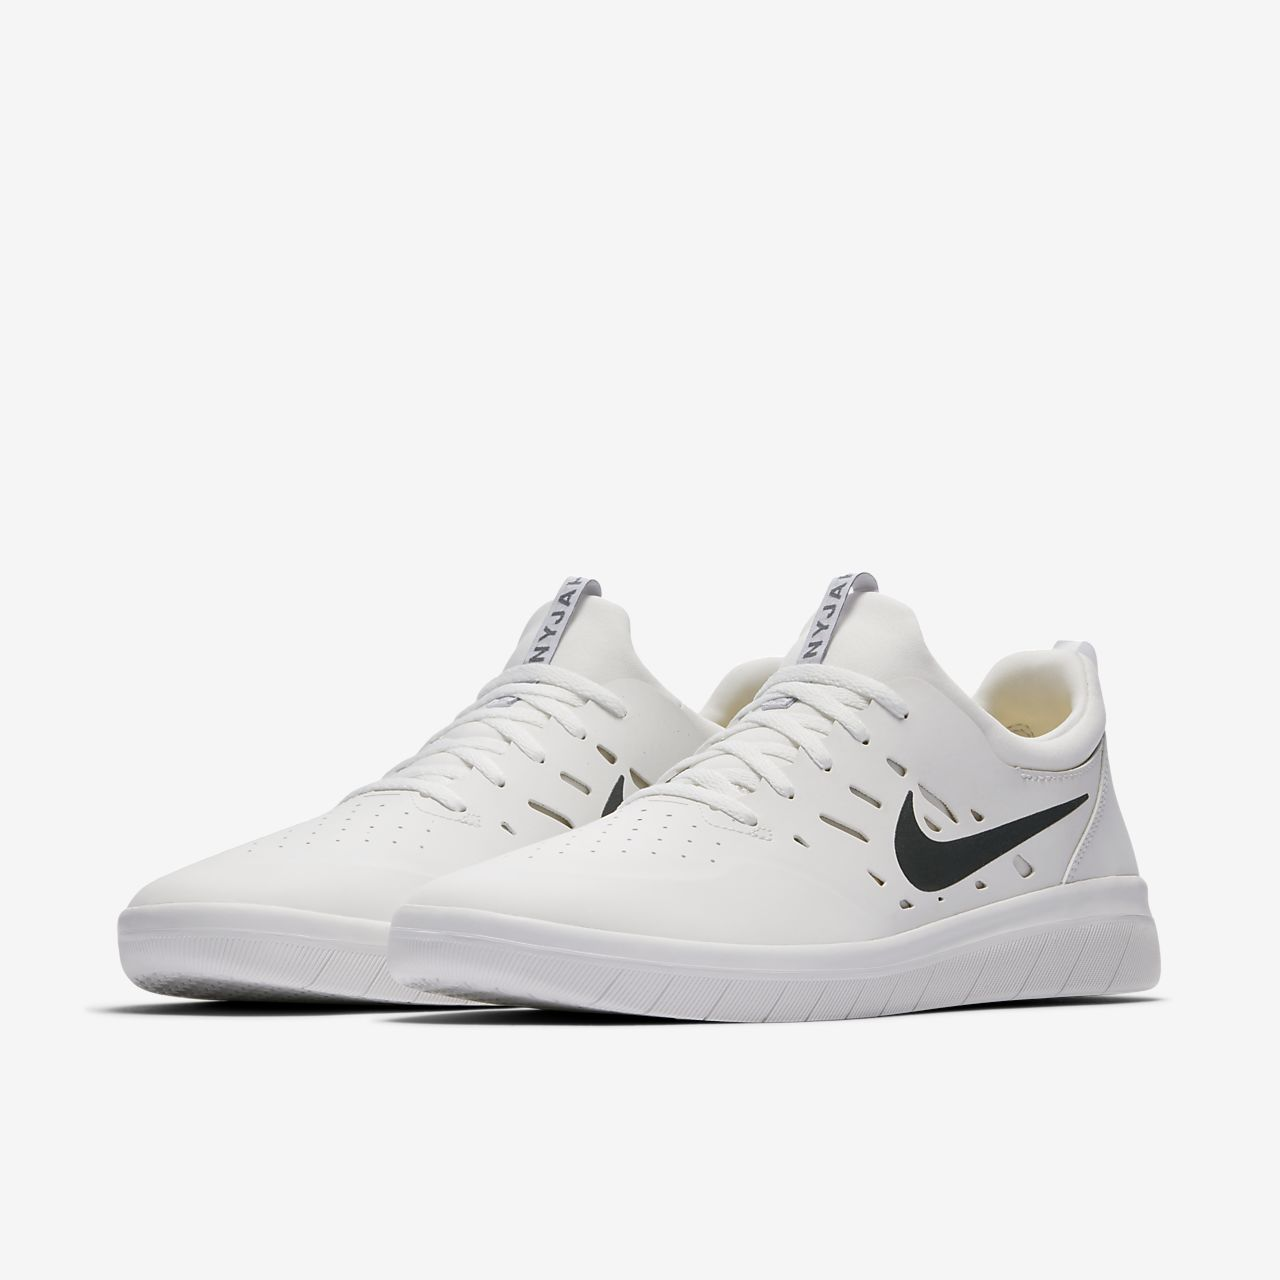 more photos 69826 0a75d ... Nike SB Nyjah Free Skate Shoe